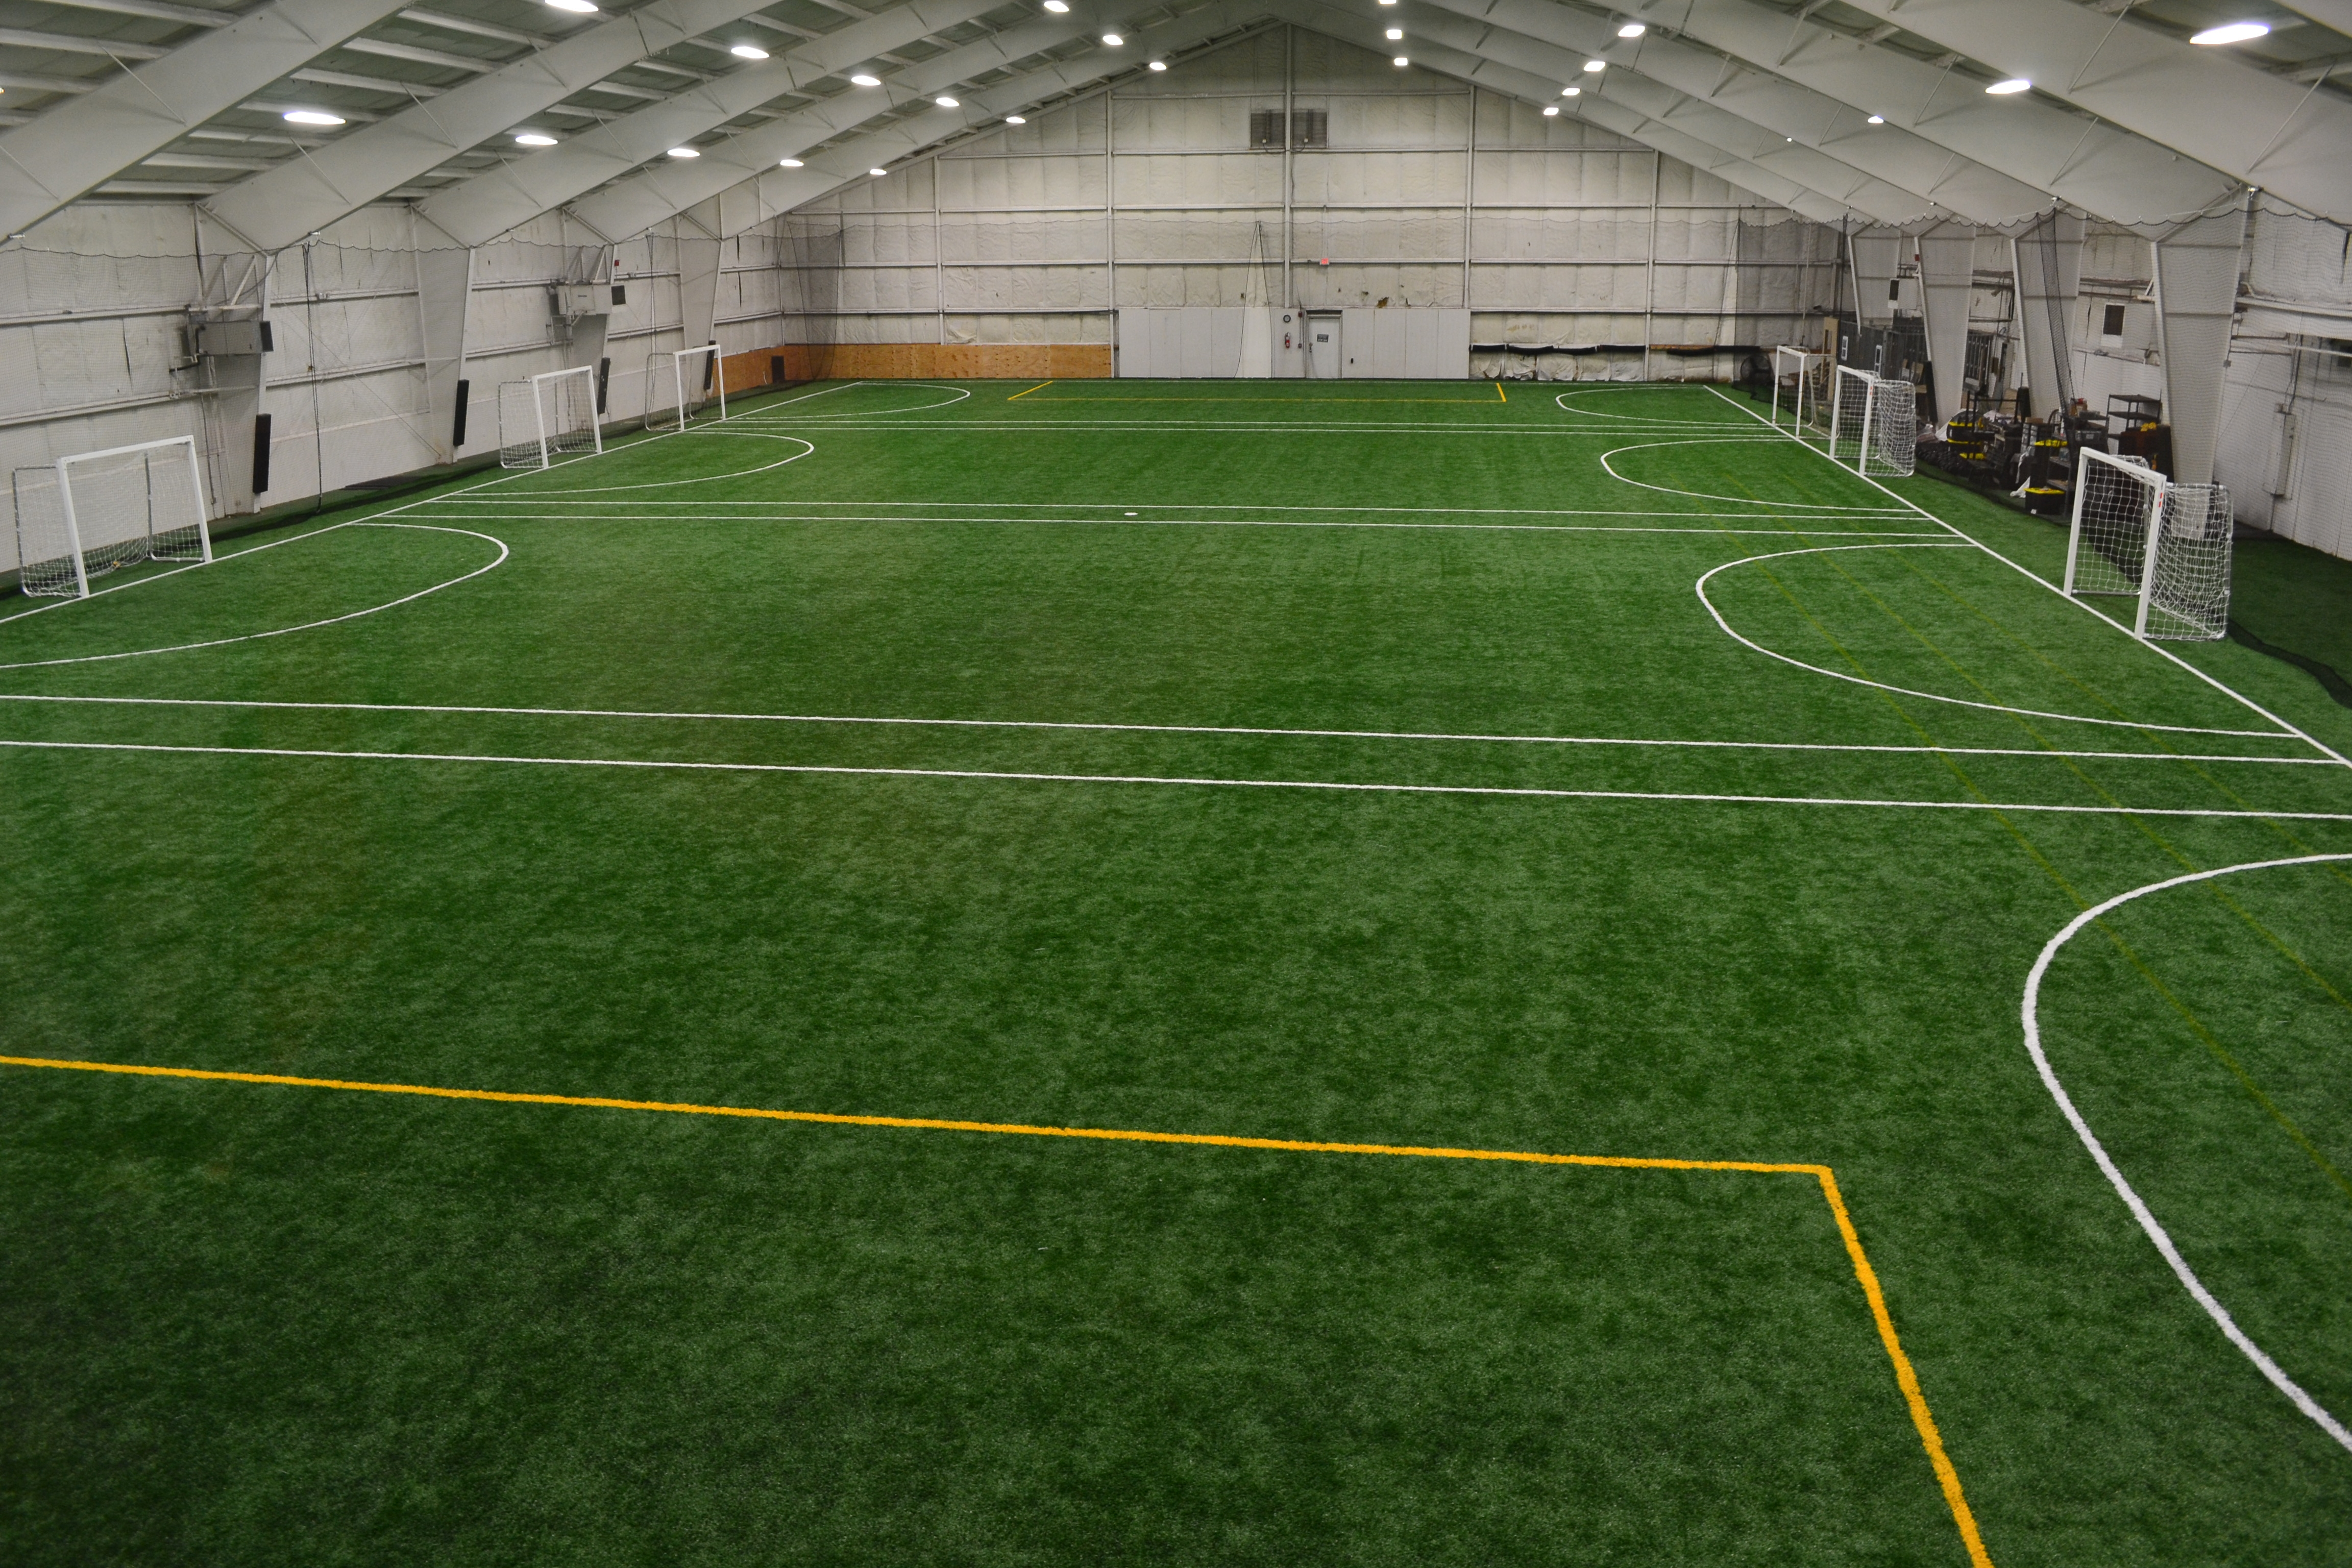 Nashville S Boost Fitclub Installs Shaw Sports Turf Indoor Field To Increase Offerings Image